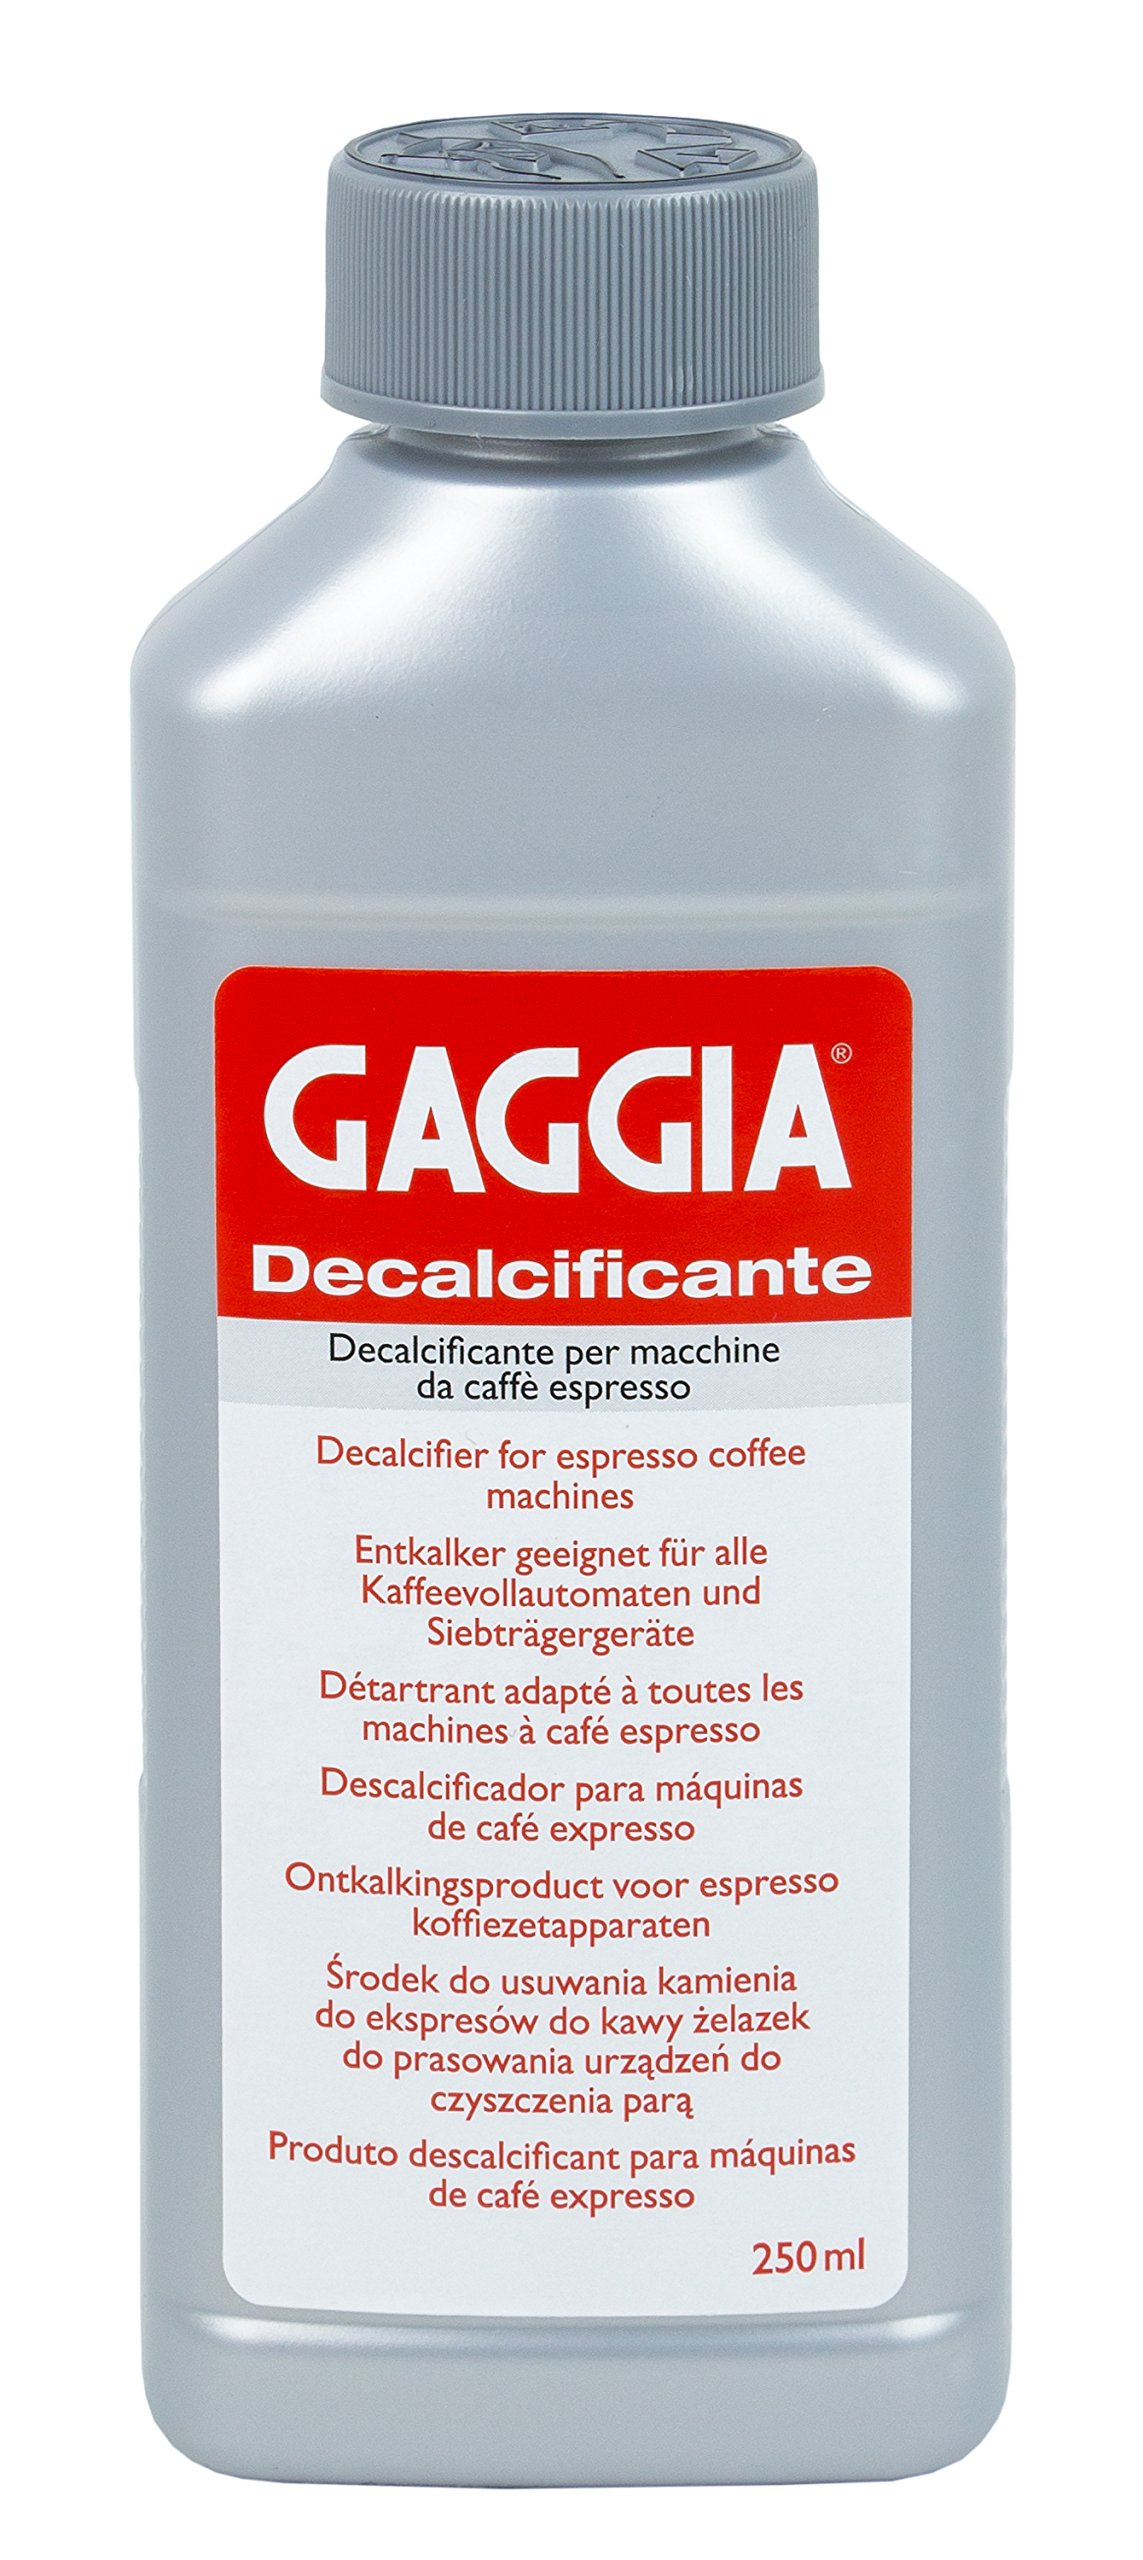 Gaggia Decalcifier Descaler Solution,250ml by Gaggia (Image #1)